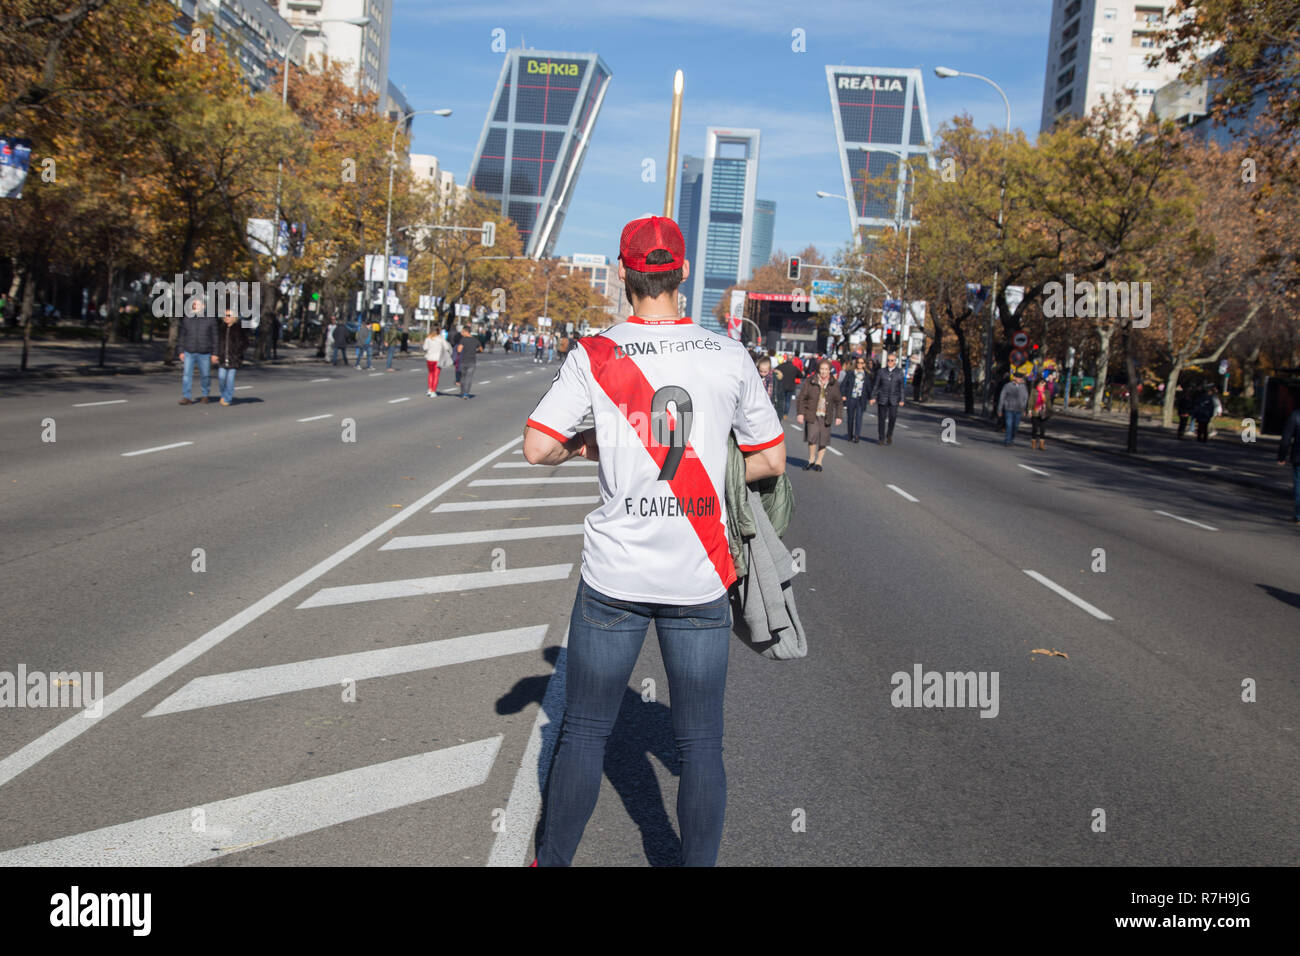 Madrid, Spain. 9th Dec, 2018. River Plate fans seen in the middle of the Paseo de la Castellana with the Kio Towers in Madrid at the background.Fans of River Plate meet in Madrid in the fan zone prior to the final match of the Copa Libertadores in Madrid. Credit: Lito Lizana/SOPA Images/ZUMA Wire/Alamy Live News Stock Photo